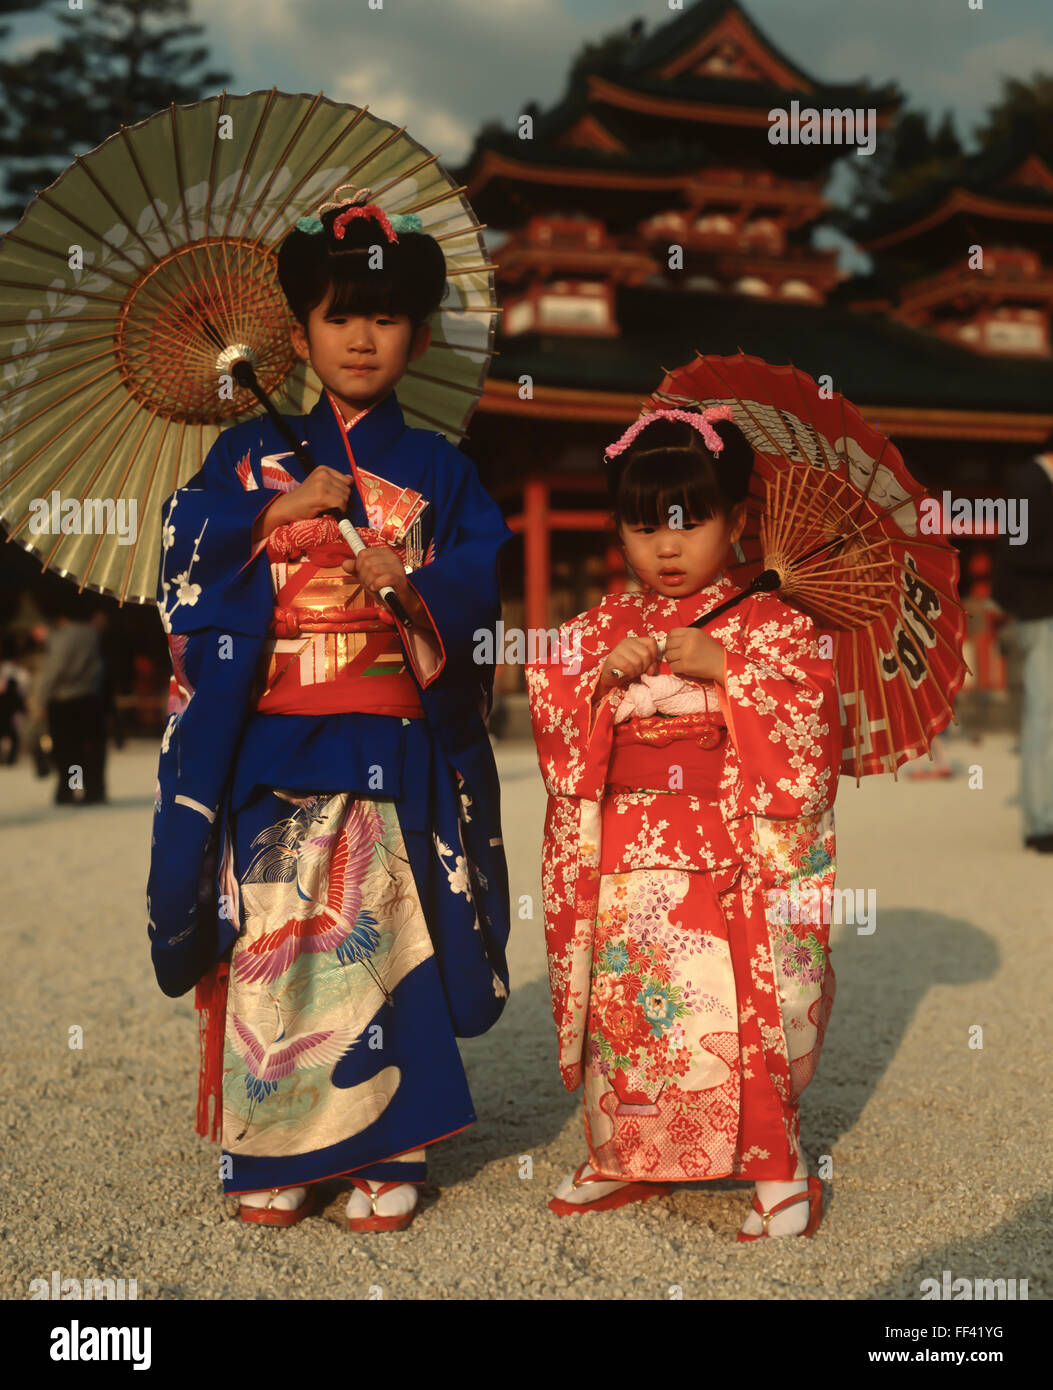 Japan, young girls in traditional Kimono holding Japanese sunshades. - Stock Image